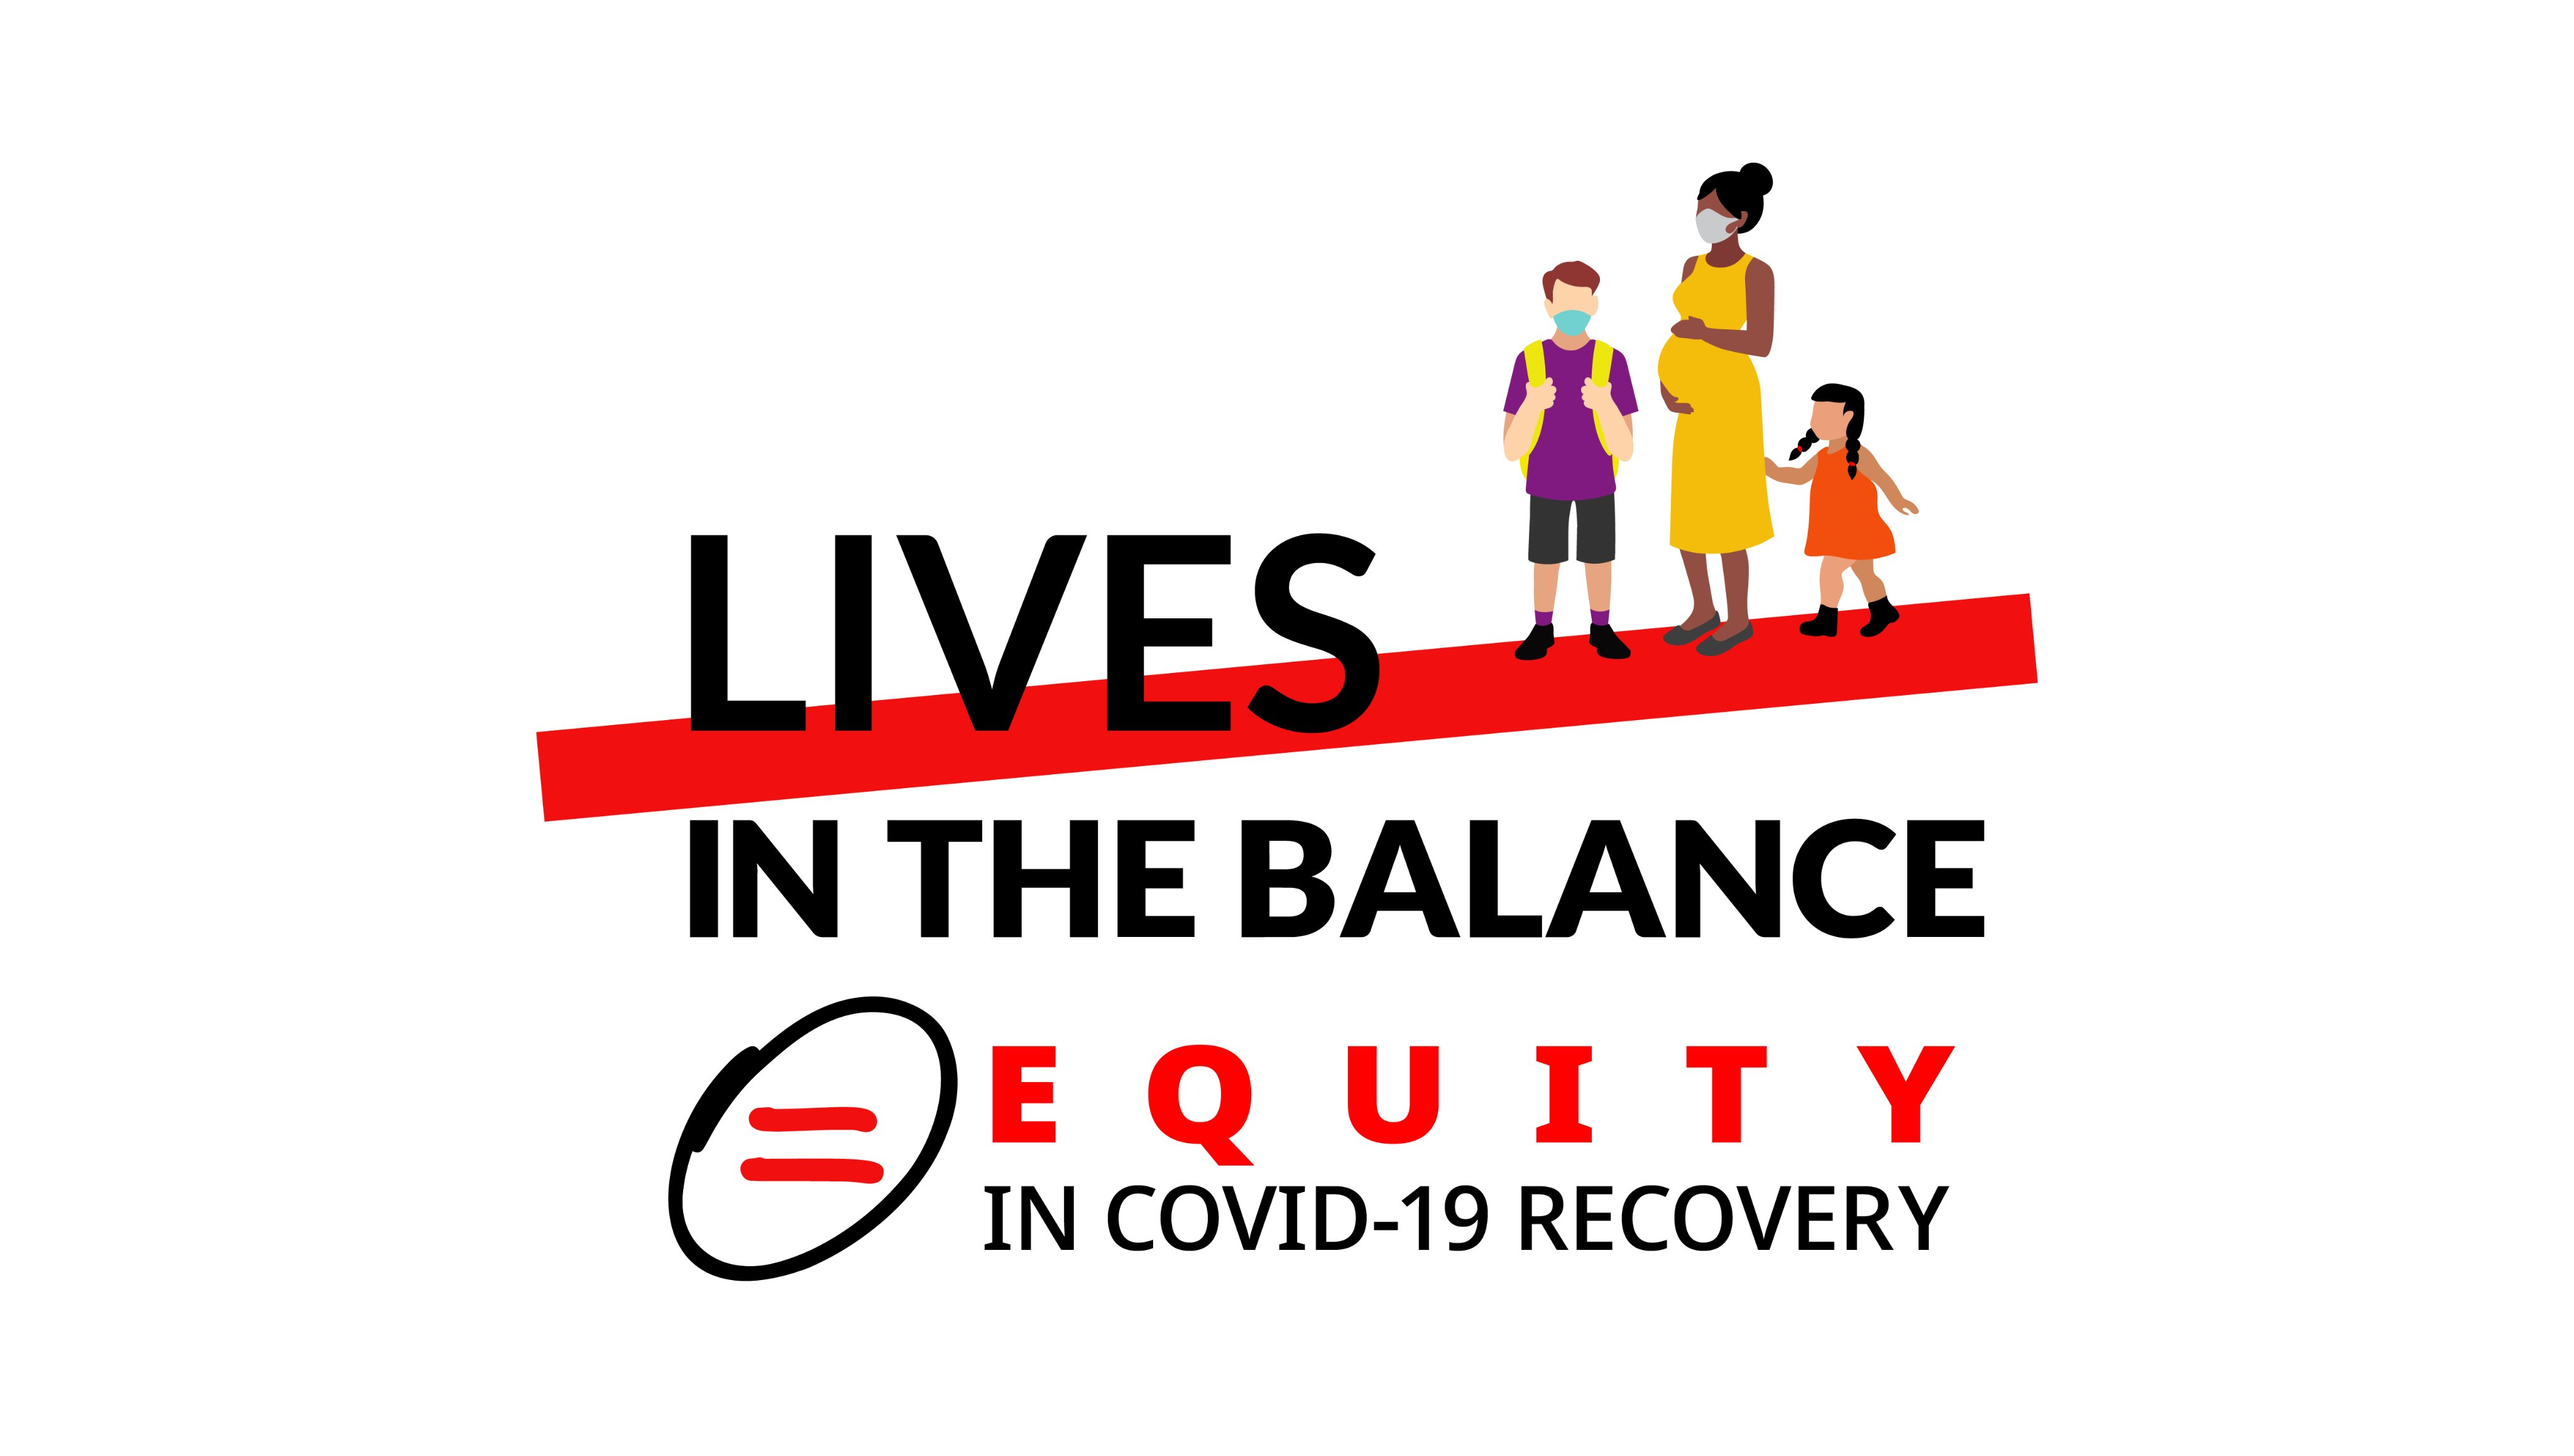 Lives in the Balance: Equity in COVID-19 Recovery